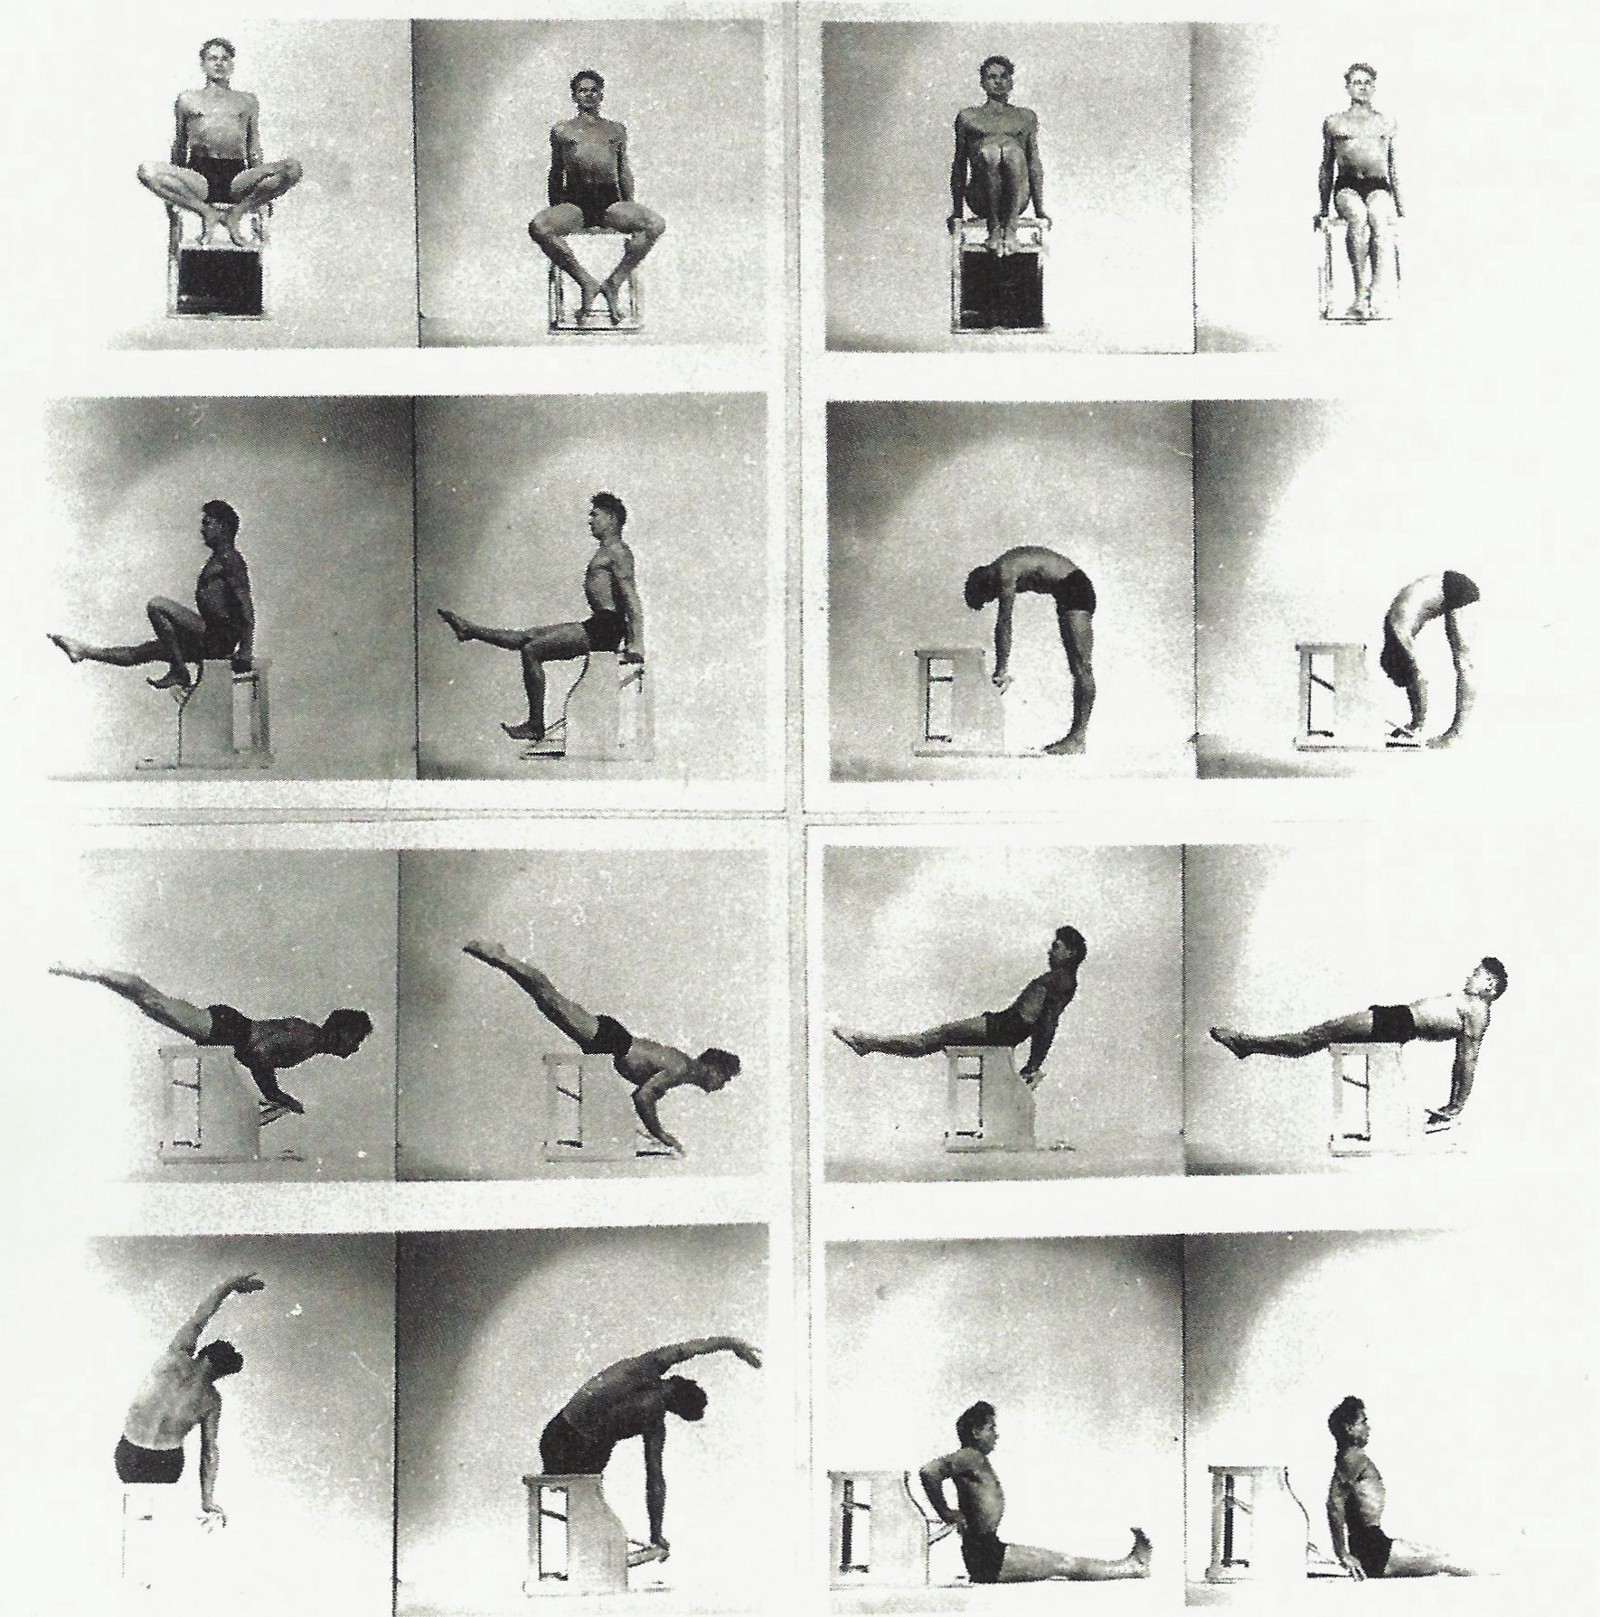 Pilates Mat Exercise Poster: Pilates Is Not Another Name For Yoga